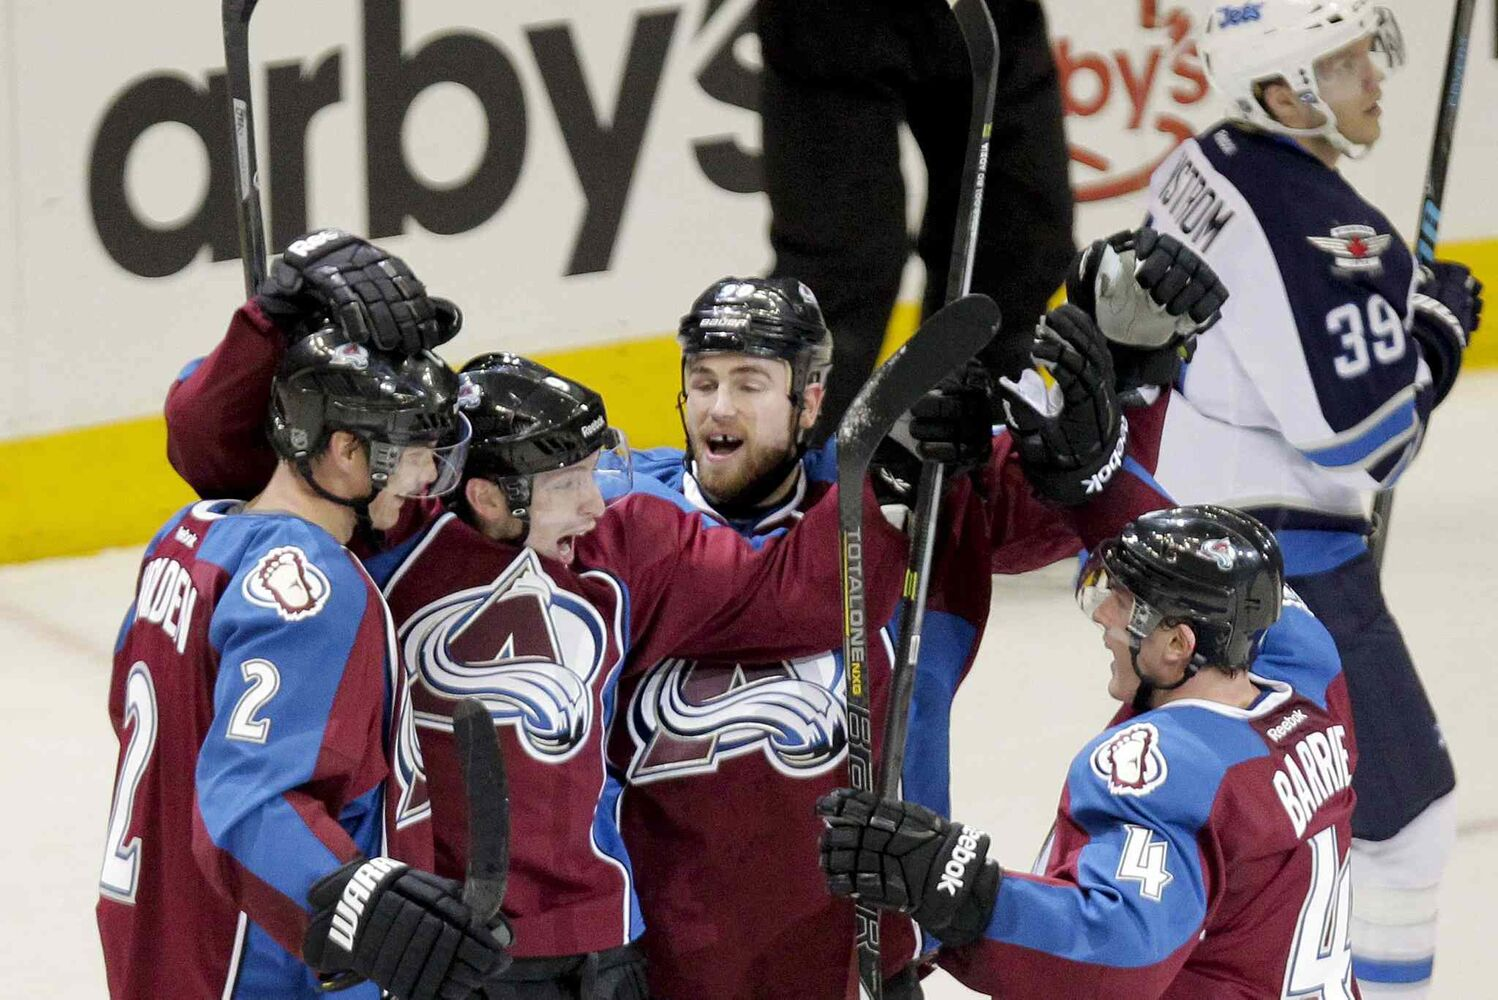 Colorado Avalanche forward Matt Duchene, second from left, celebrates after scoring the game-winning goal past Winnipeg Jets goalie Al Montoya during overtime of an NHL game at the Pepsi Center in Denver, Colo., Monday. The Avalanche won 3-2 to hand the Jets their fourth straight defeat.